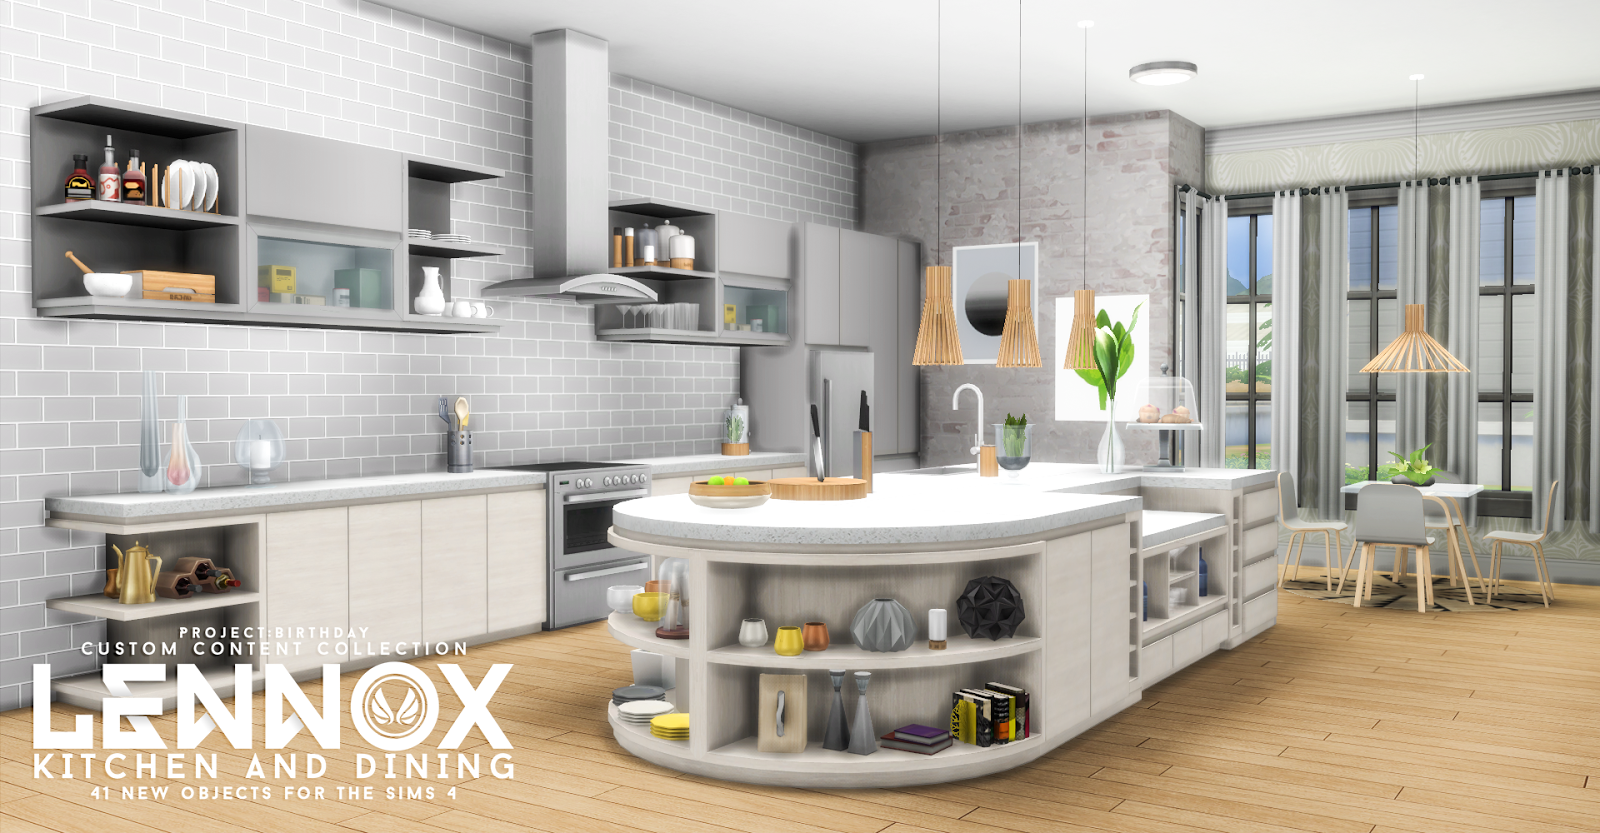 My Sims 4 Blog Updated Lennox Kitchen And Dining Set by  : lennox styled 02 from mysims4blog.blogspot.com size 1600 x 833 png 1609kB